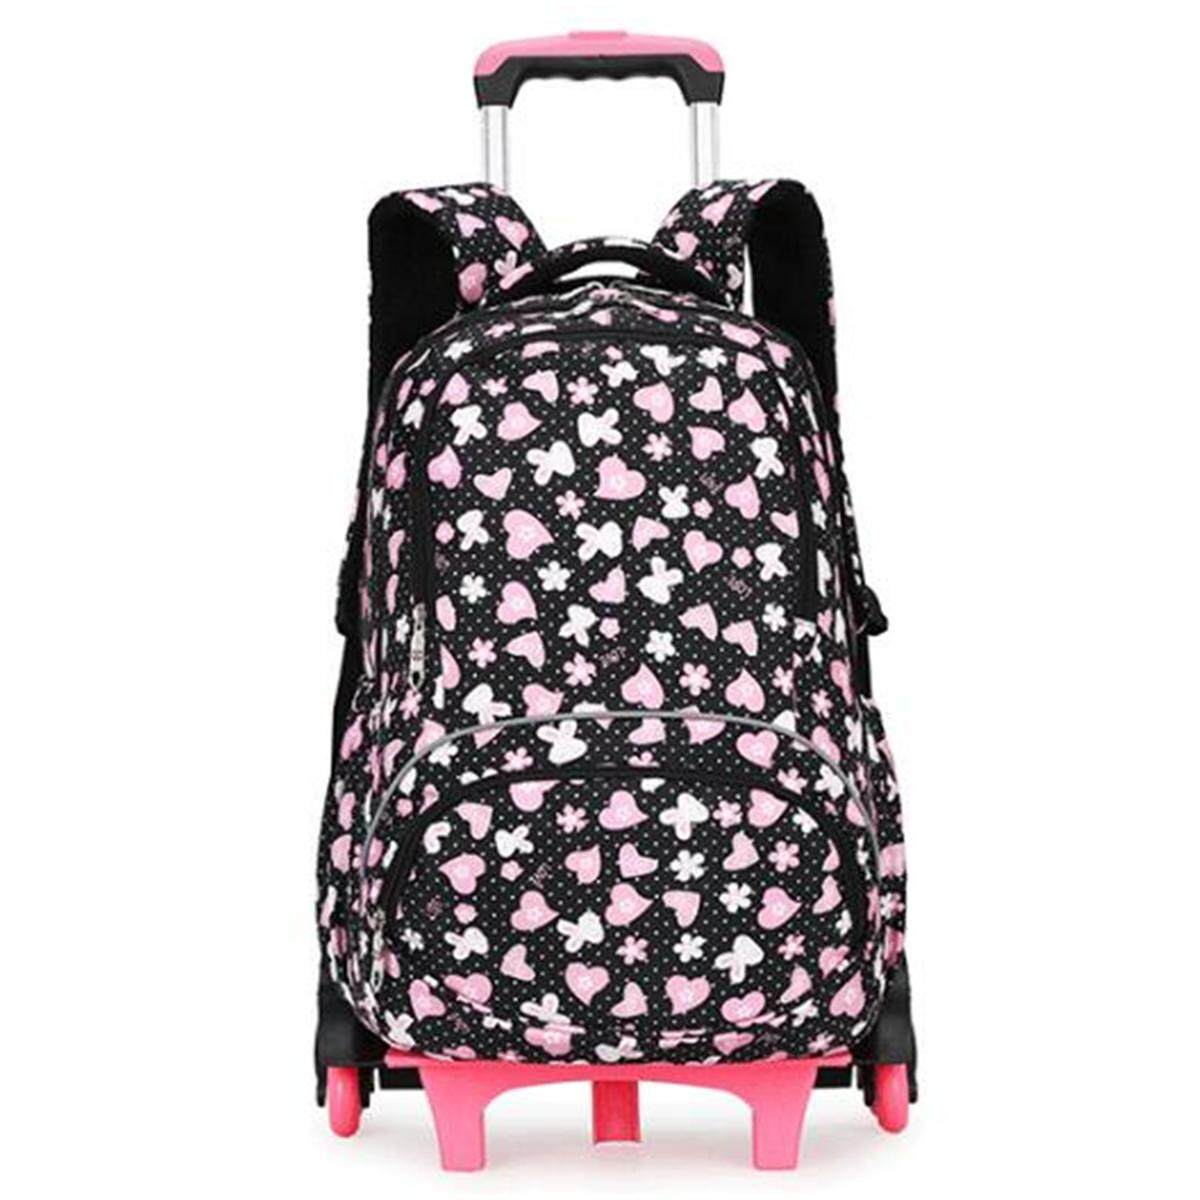 Kids Student Trolley Backpack School Luggage Hand Bag With 6 Wheels Removable